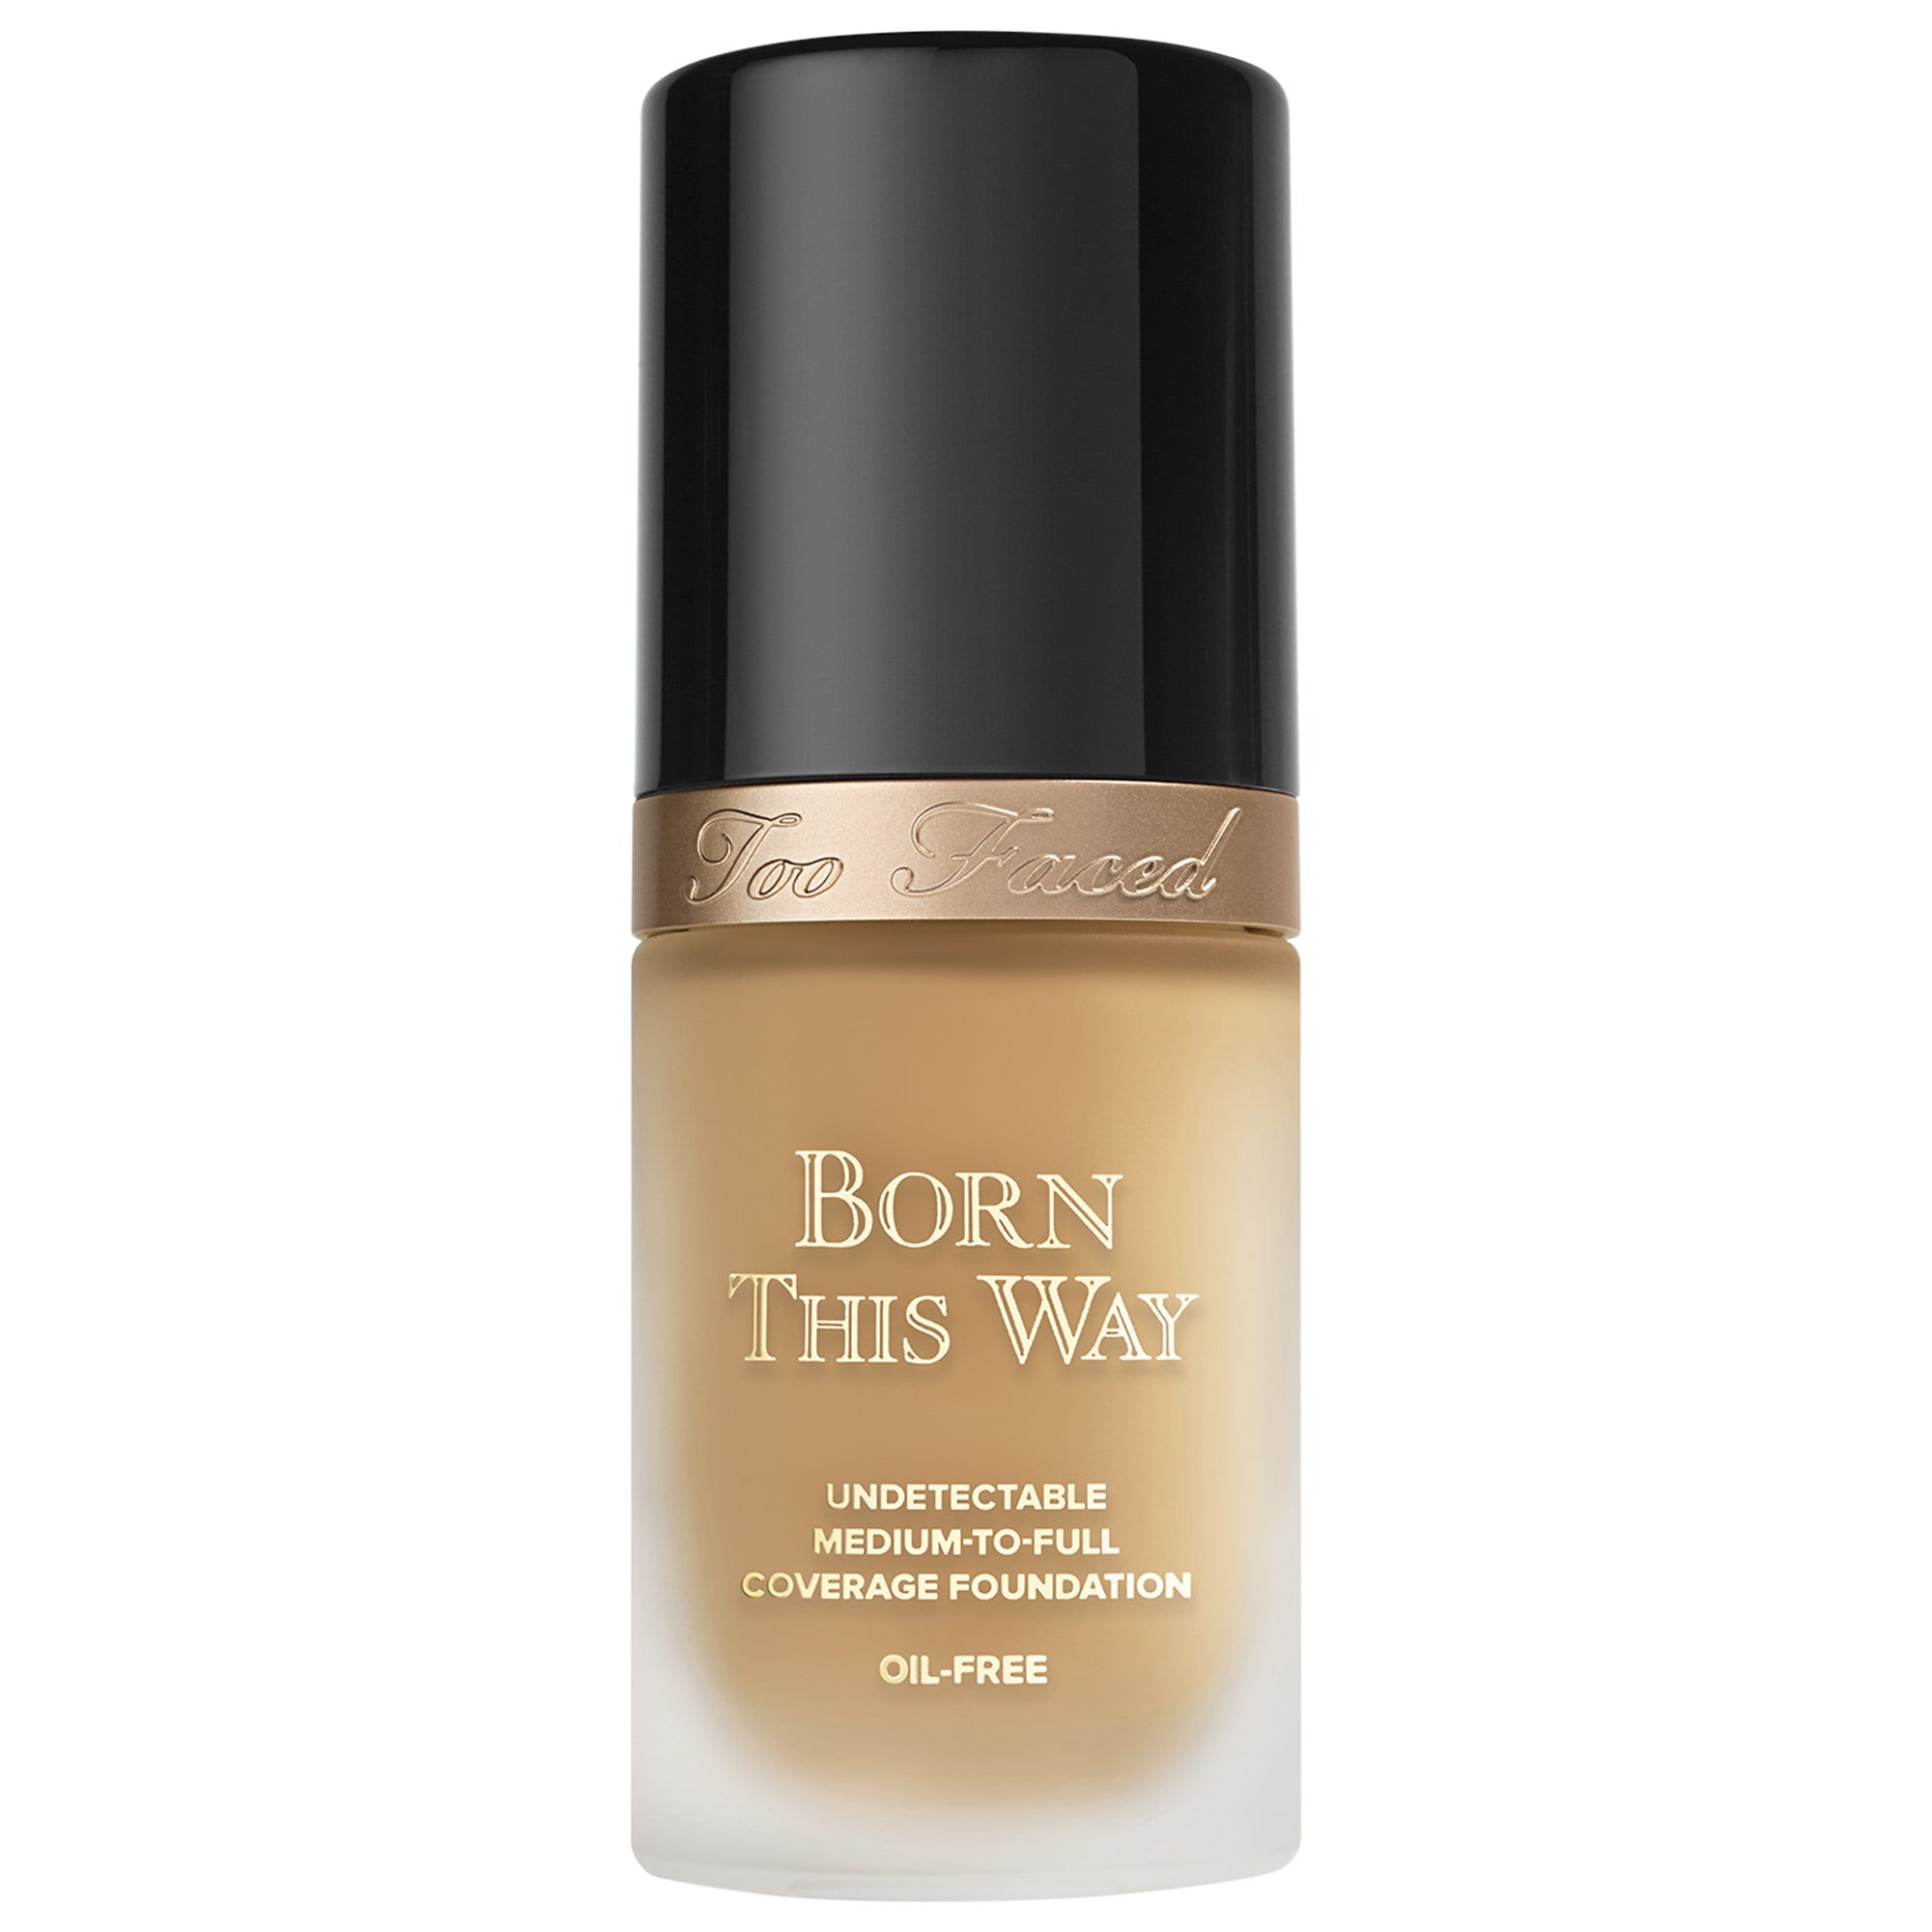 Image result for too faced born this way foundation